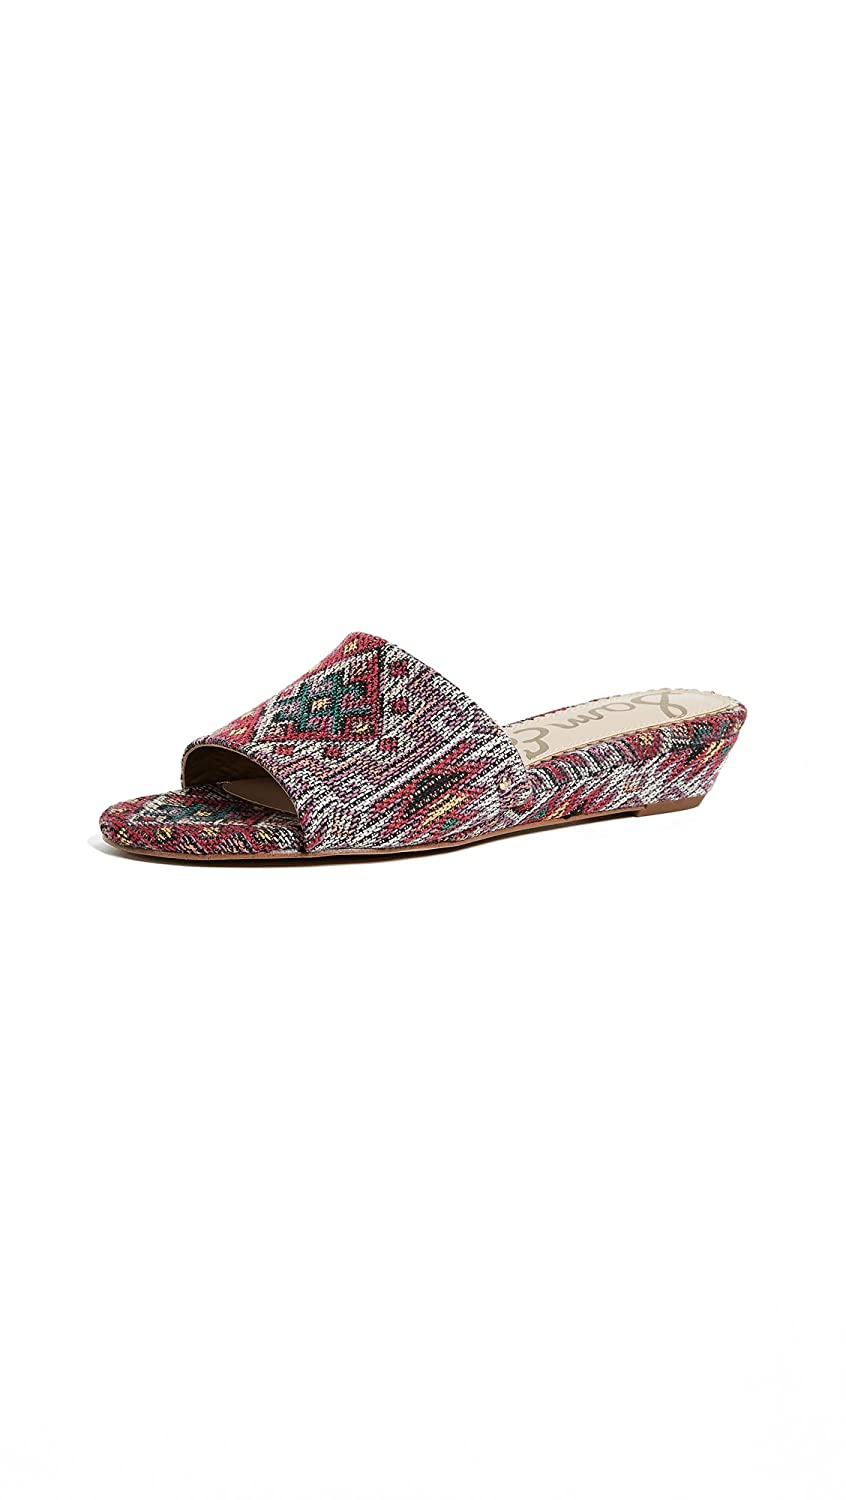 Sam Edelman Women's Liliana Slide Sandal B076TMZFGT 8 B(M) US|Red Multi